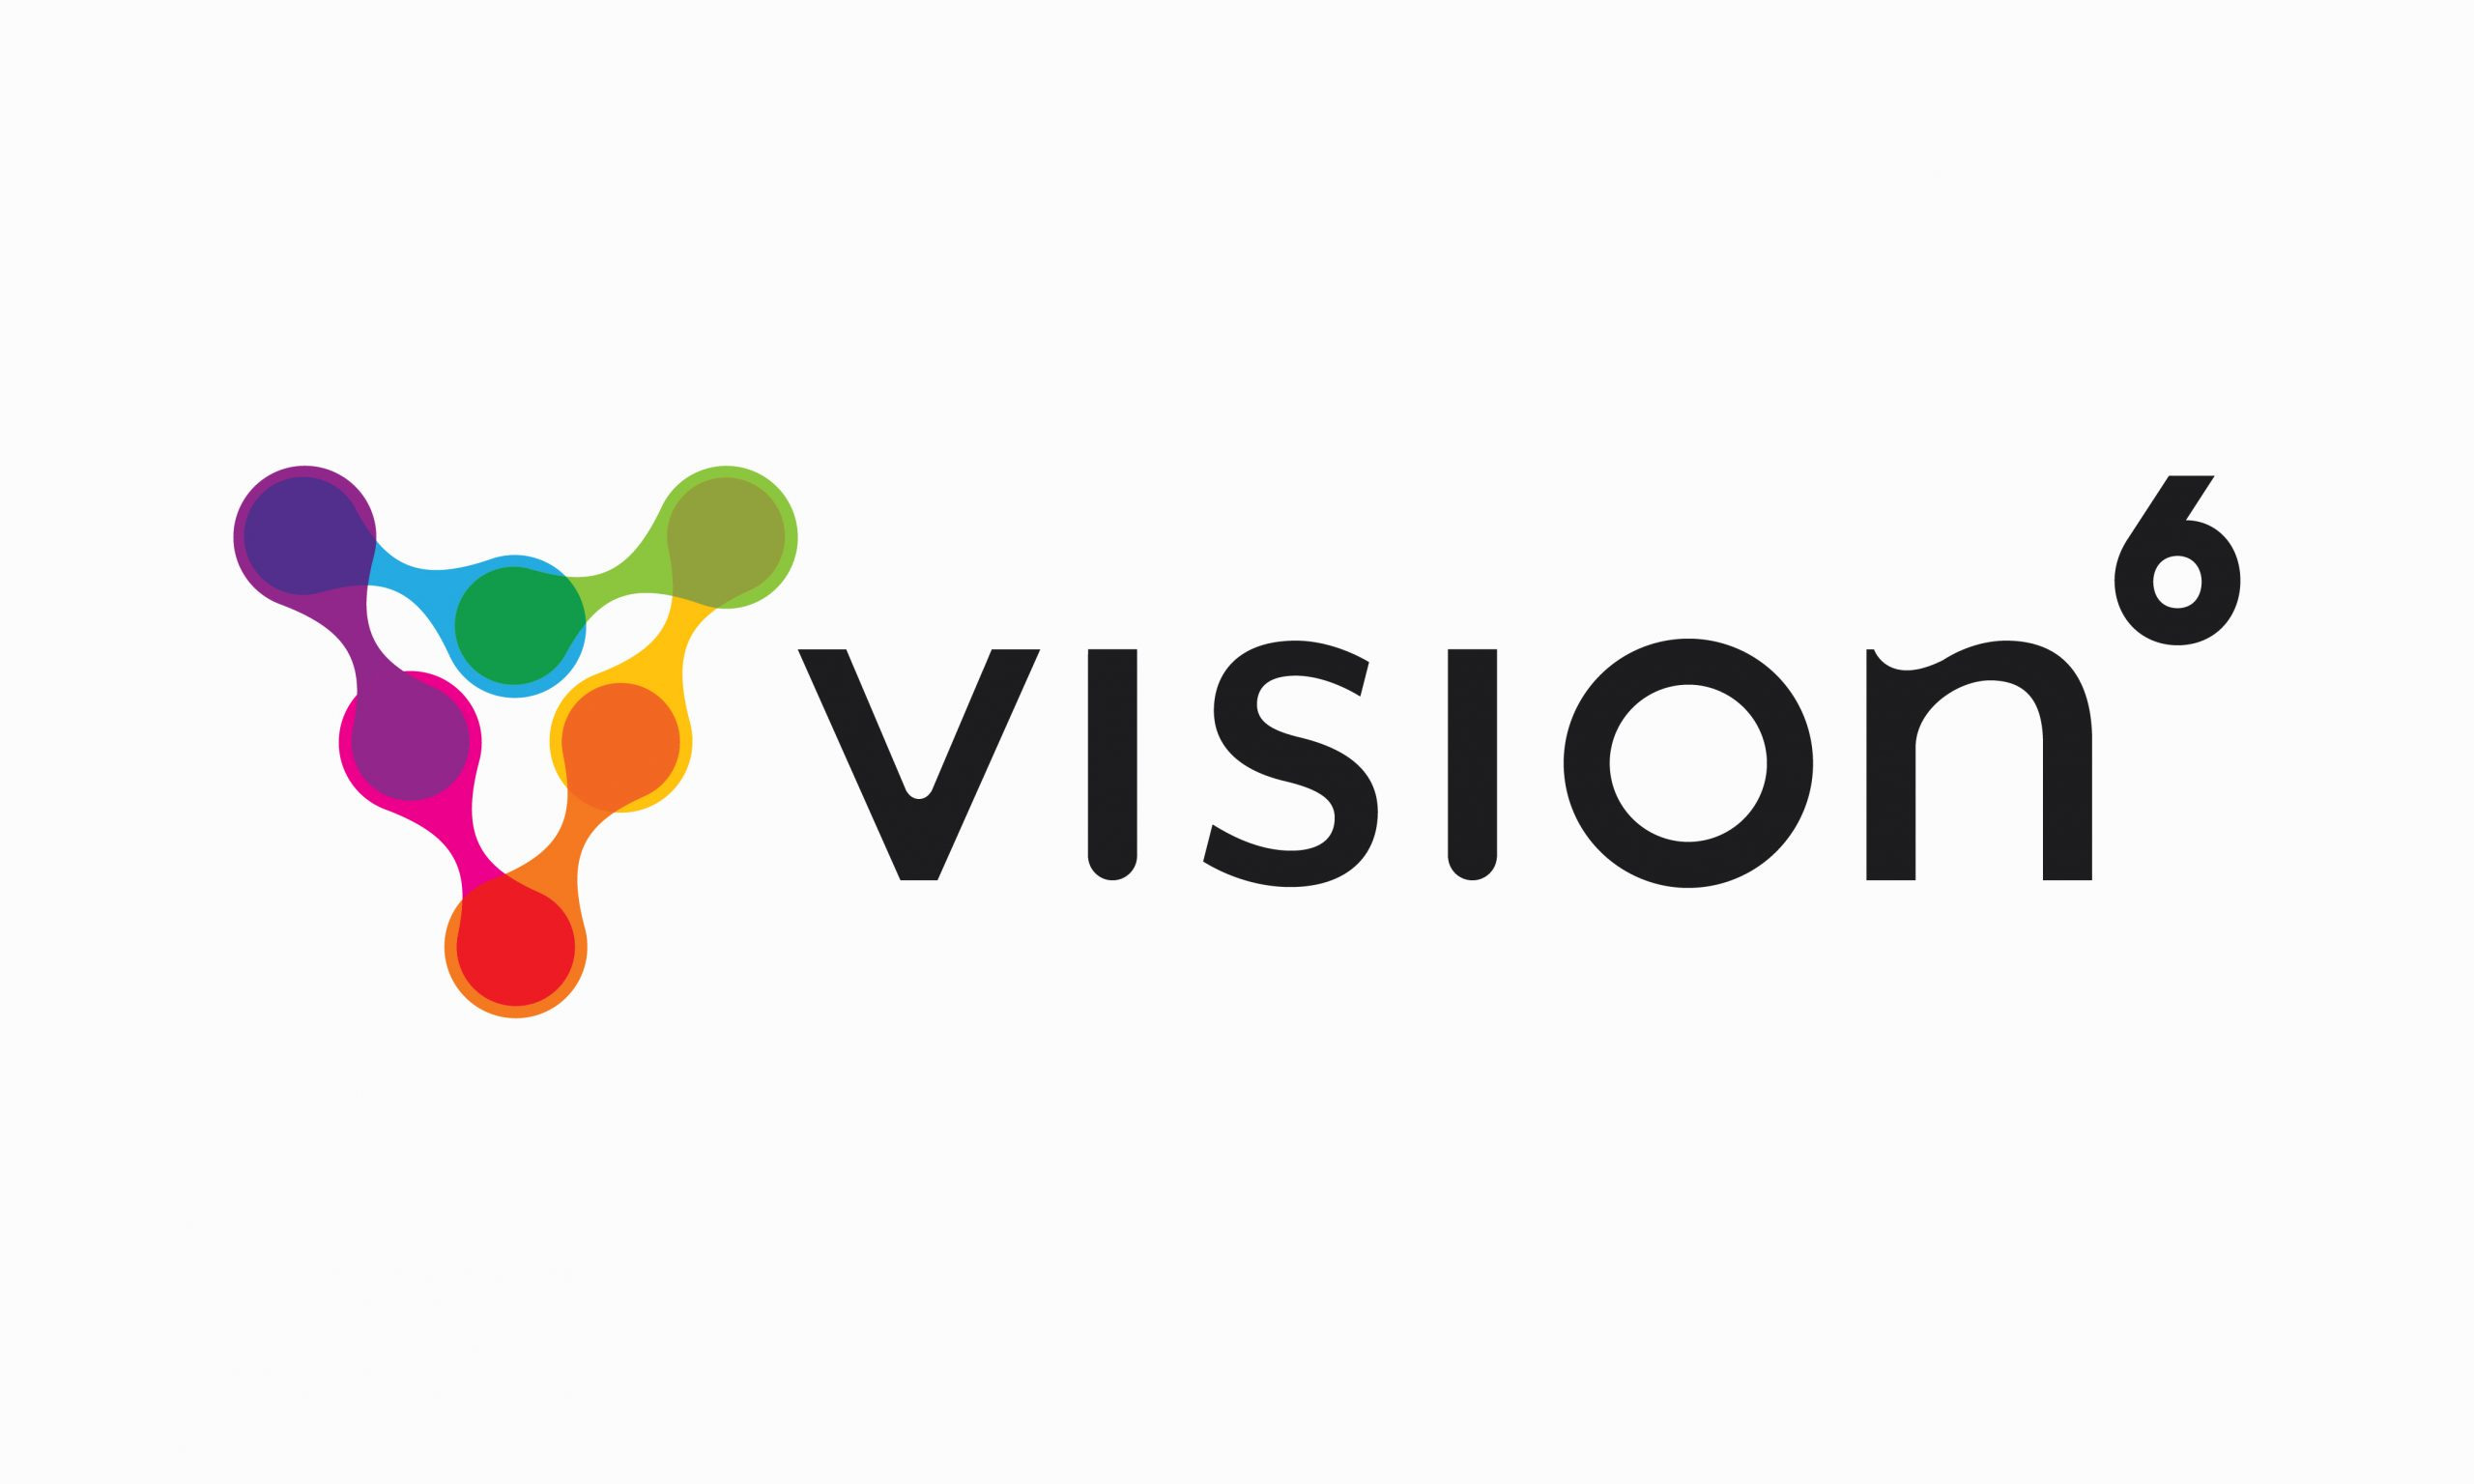 4 Vision6 features you might not know about